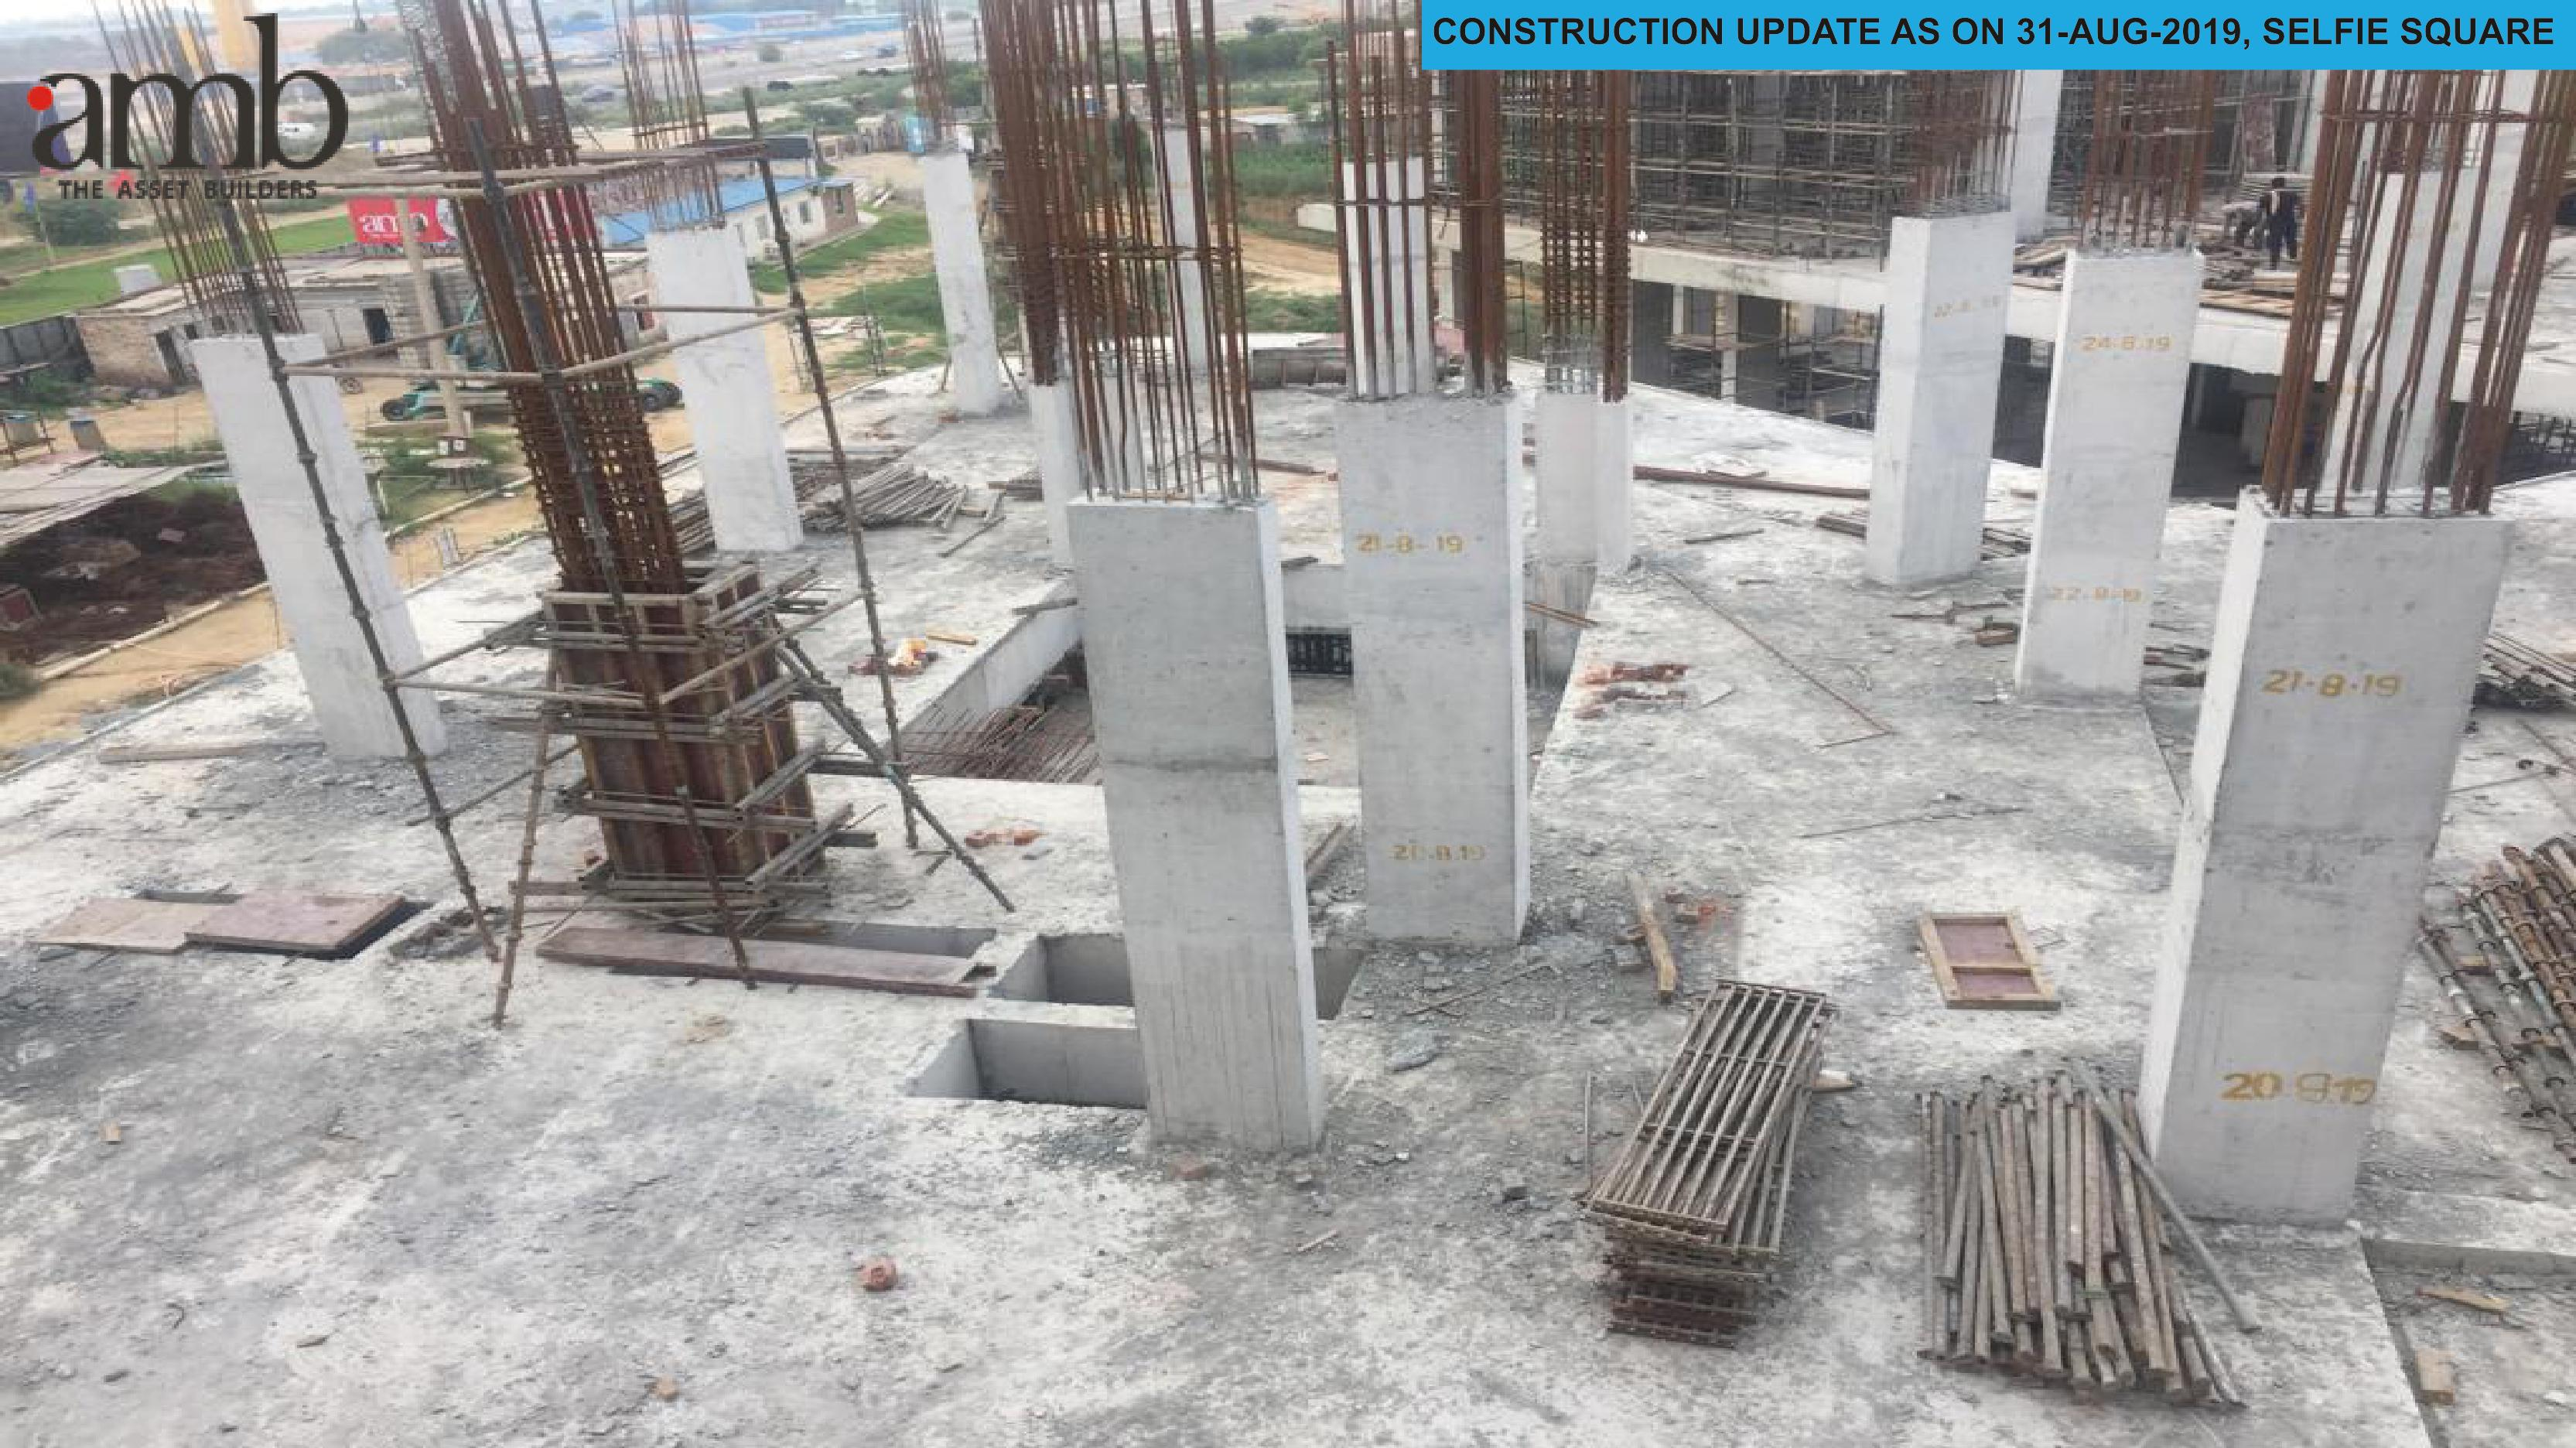 Construction updates of AMB Selfie Square as on Aug 2019 Photo